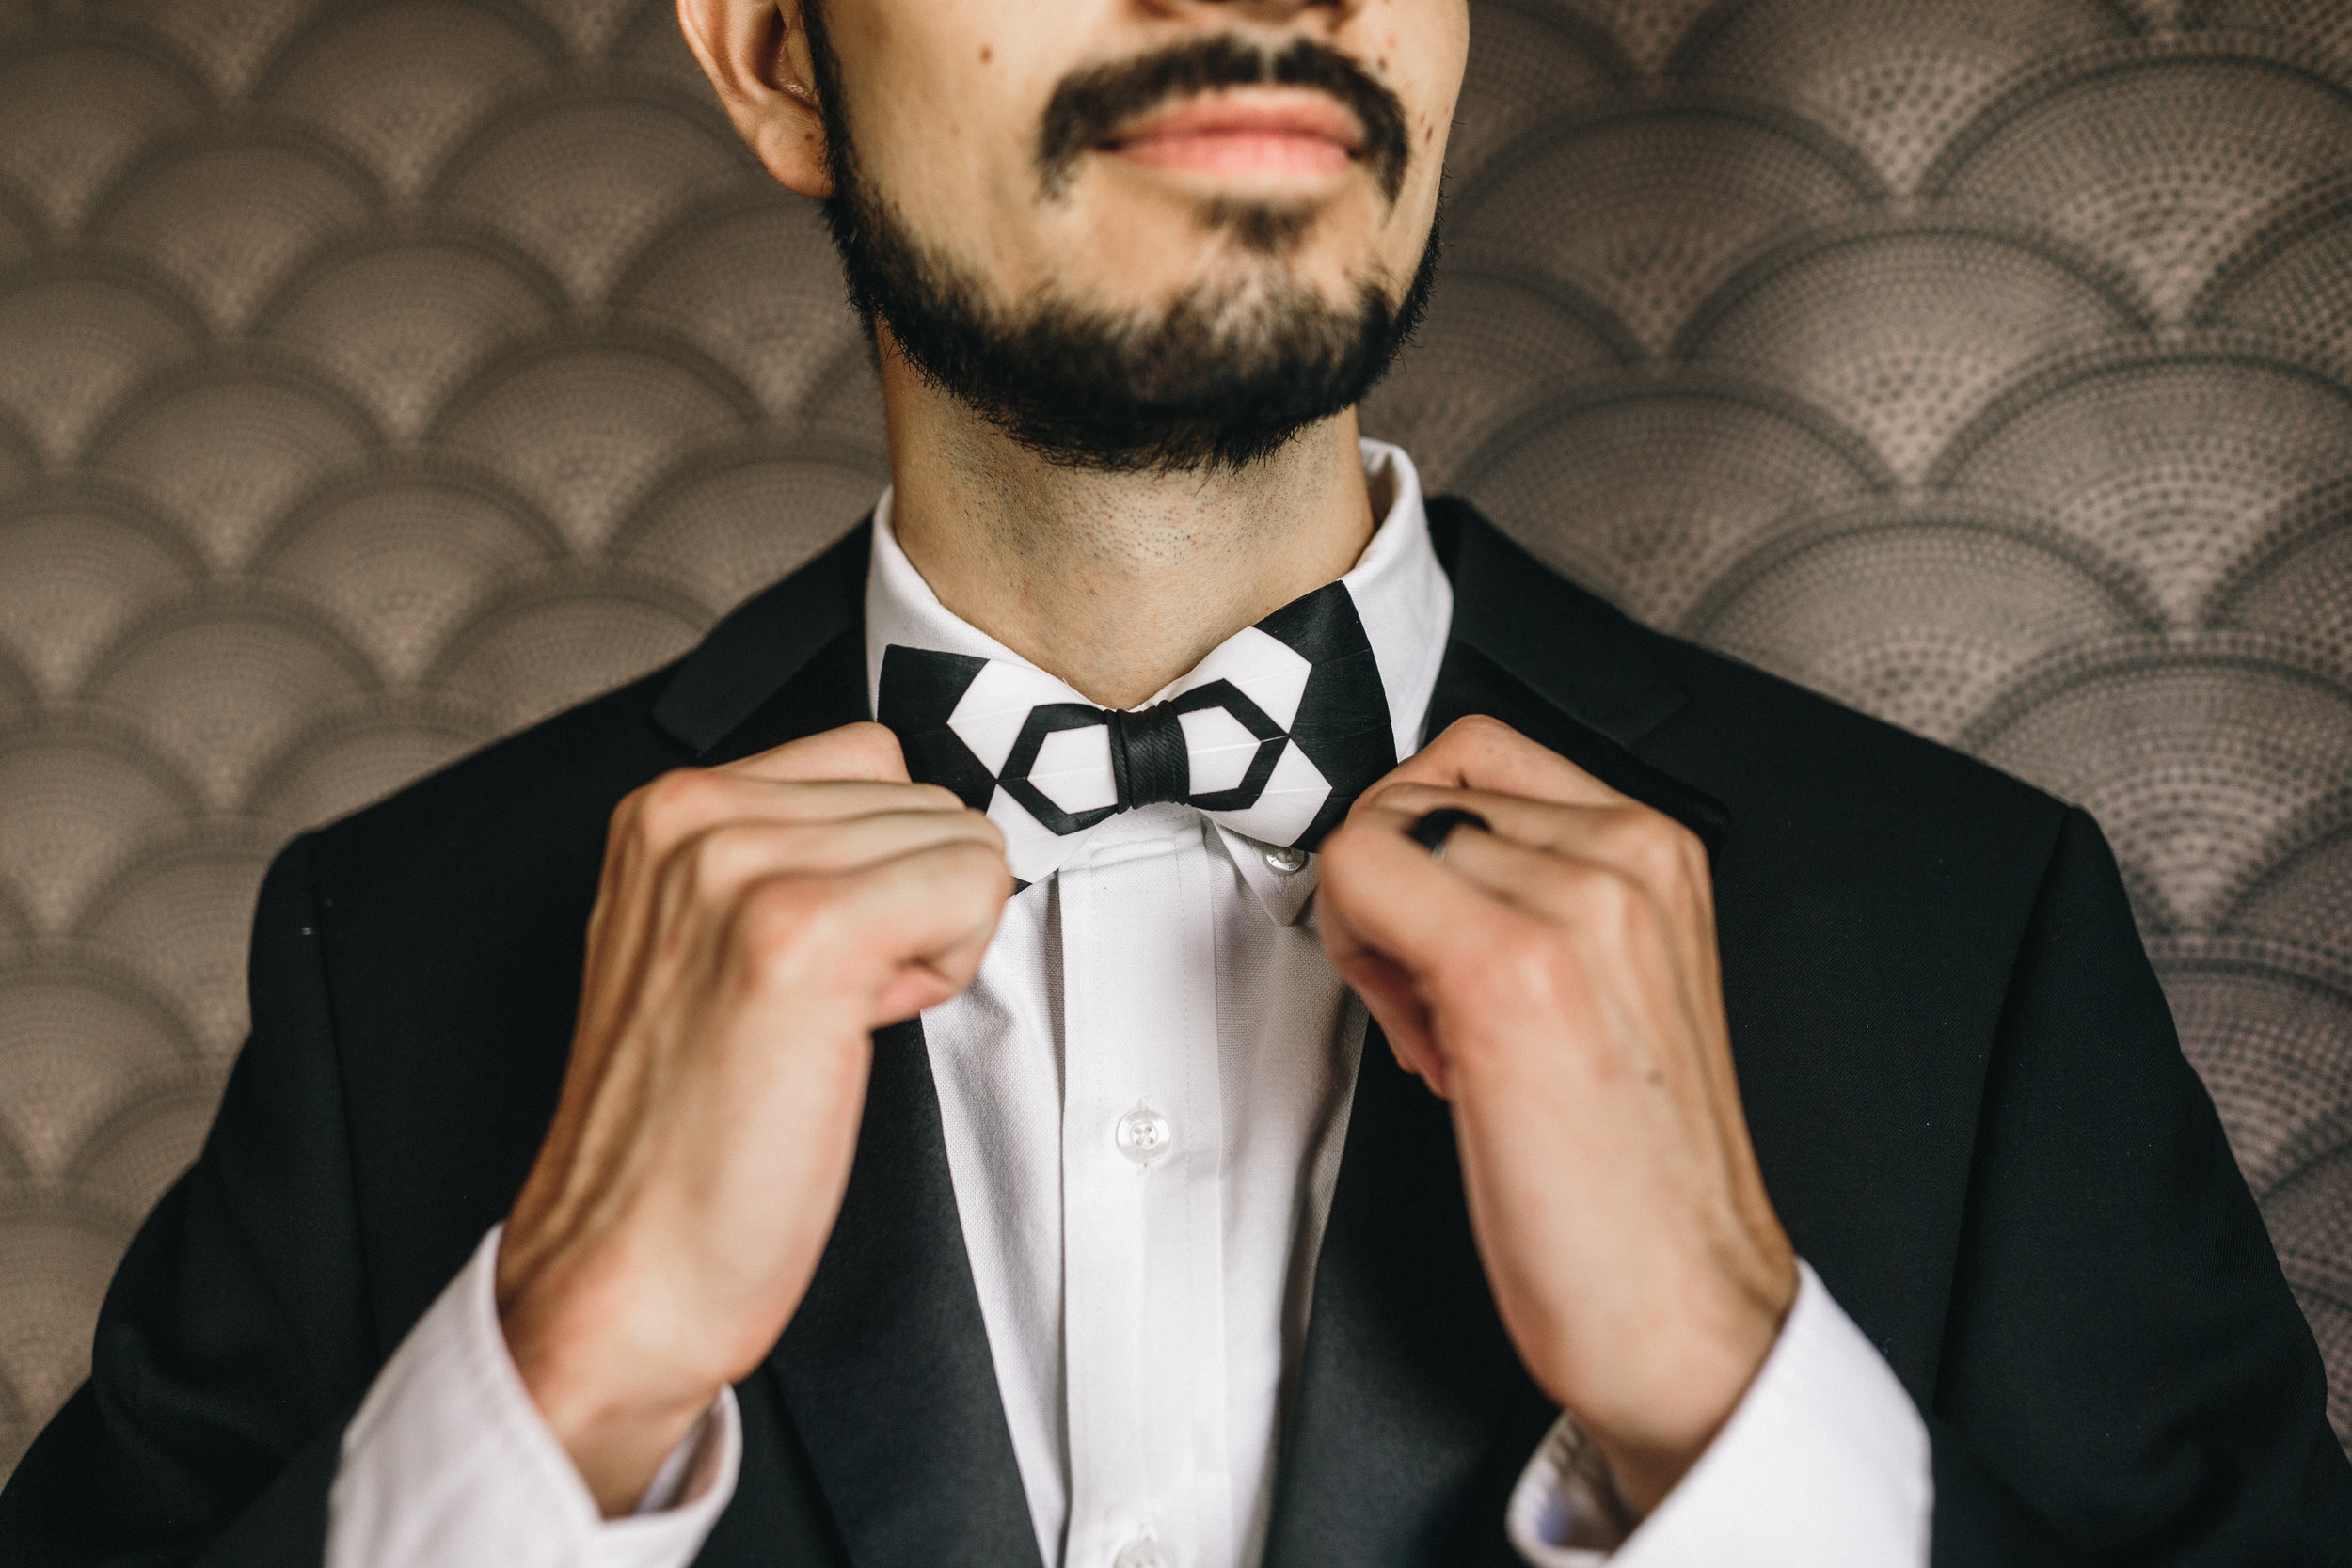 Black and White Groom Bowtie Savannah Wedding Planning by Fleeting Elegance